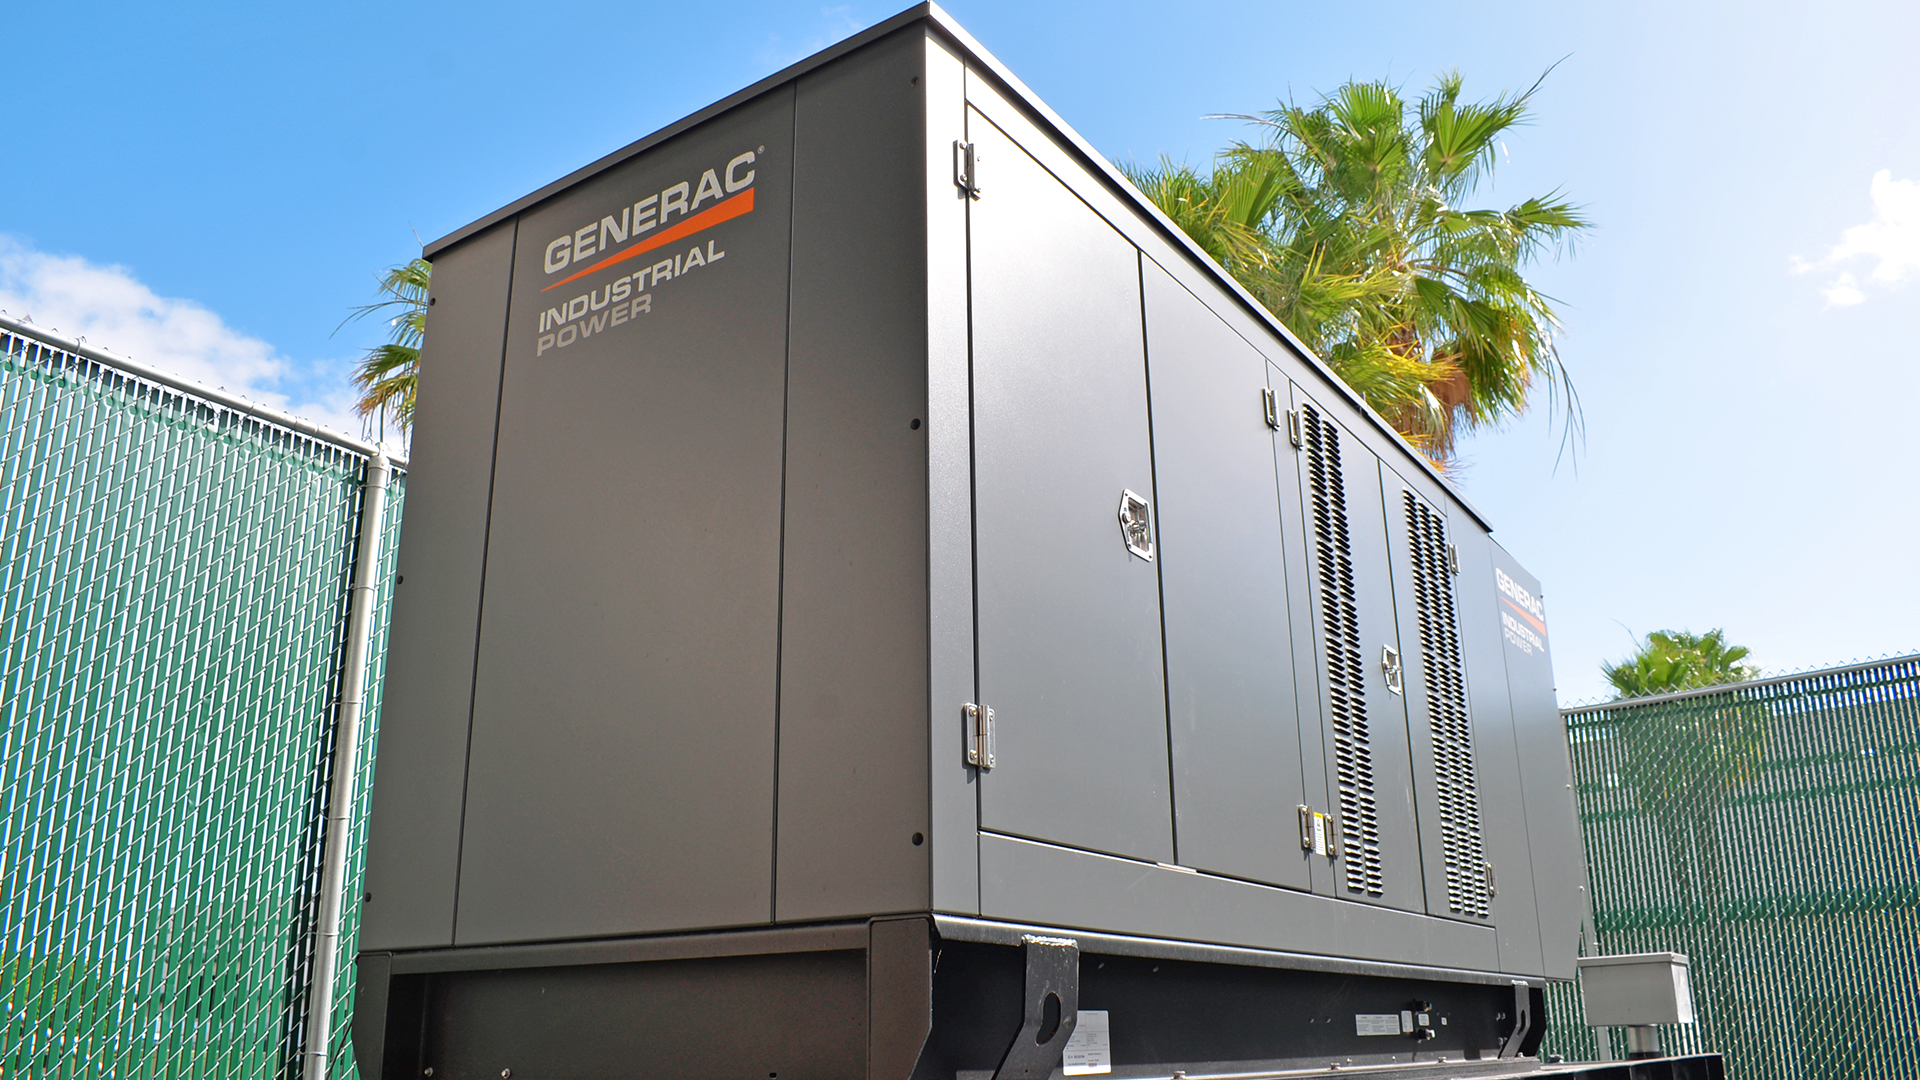 A generator has been installed planning for the event of poweroutages.